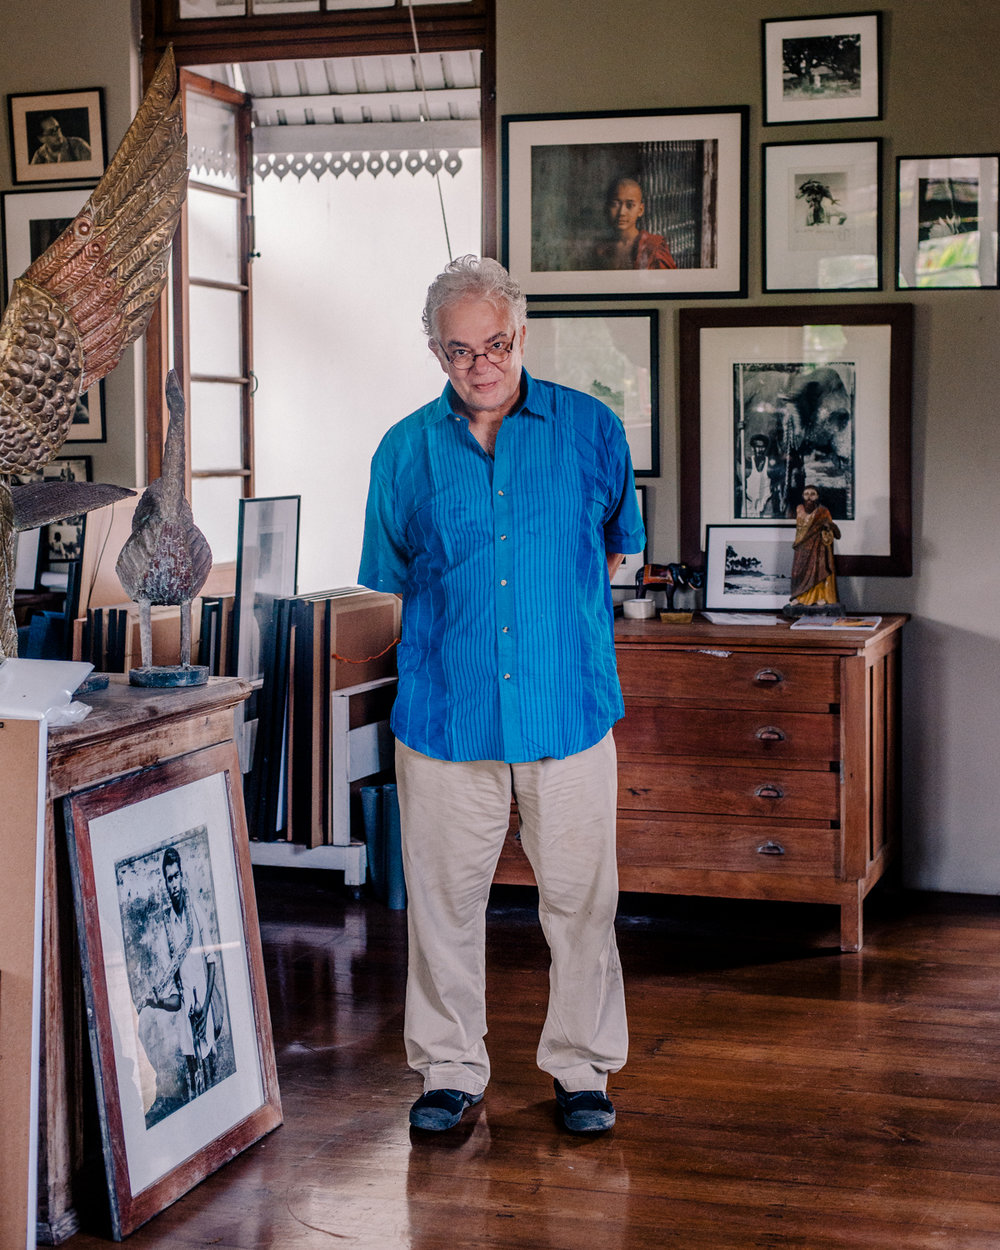 Dominic Sansoni – cafe owner and collector of historic Sri Lankan photography – at his office in Colombo for Monocle.